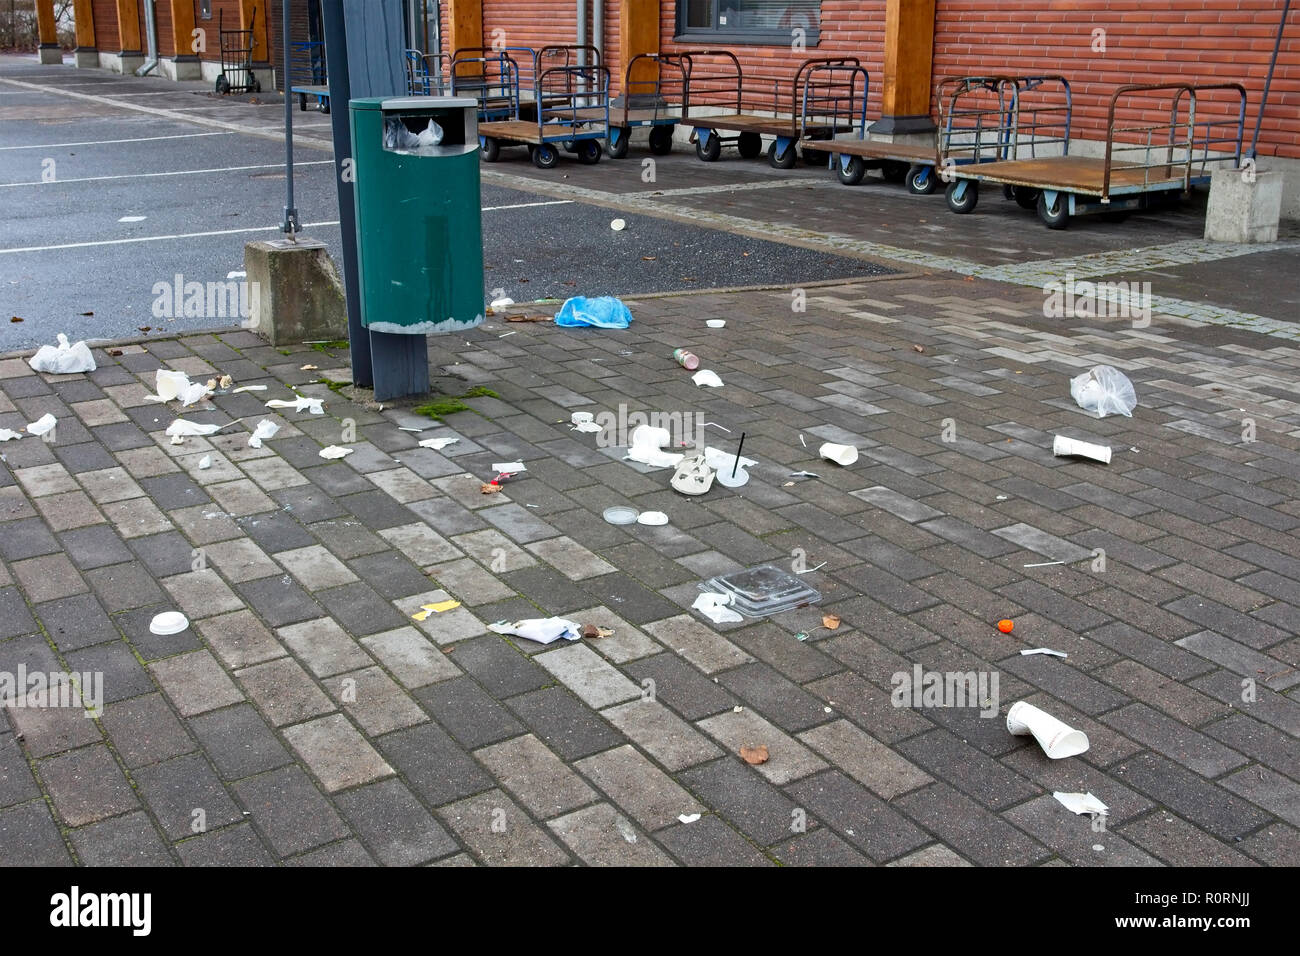 littered area with trashcan - Stock Image